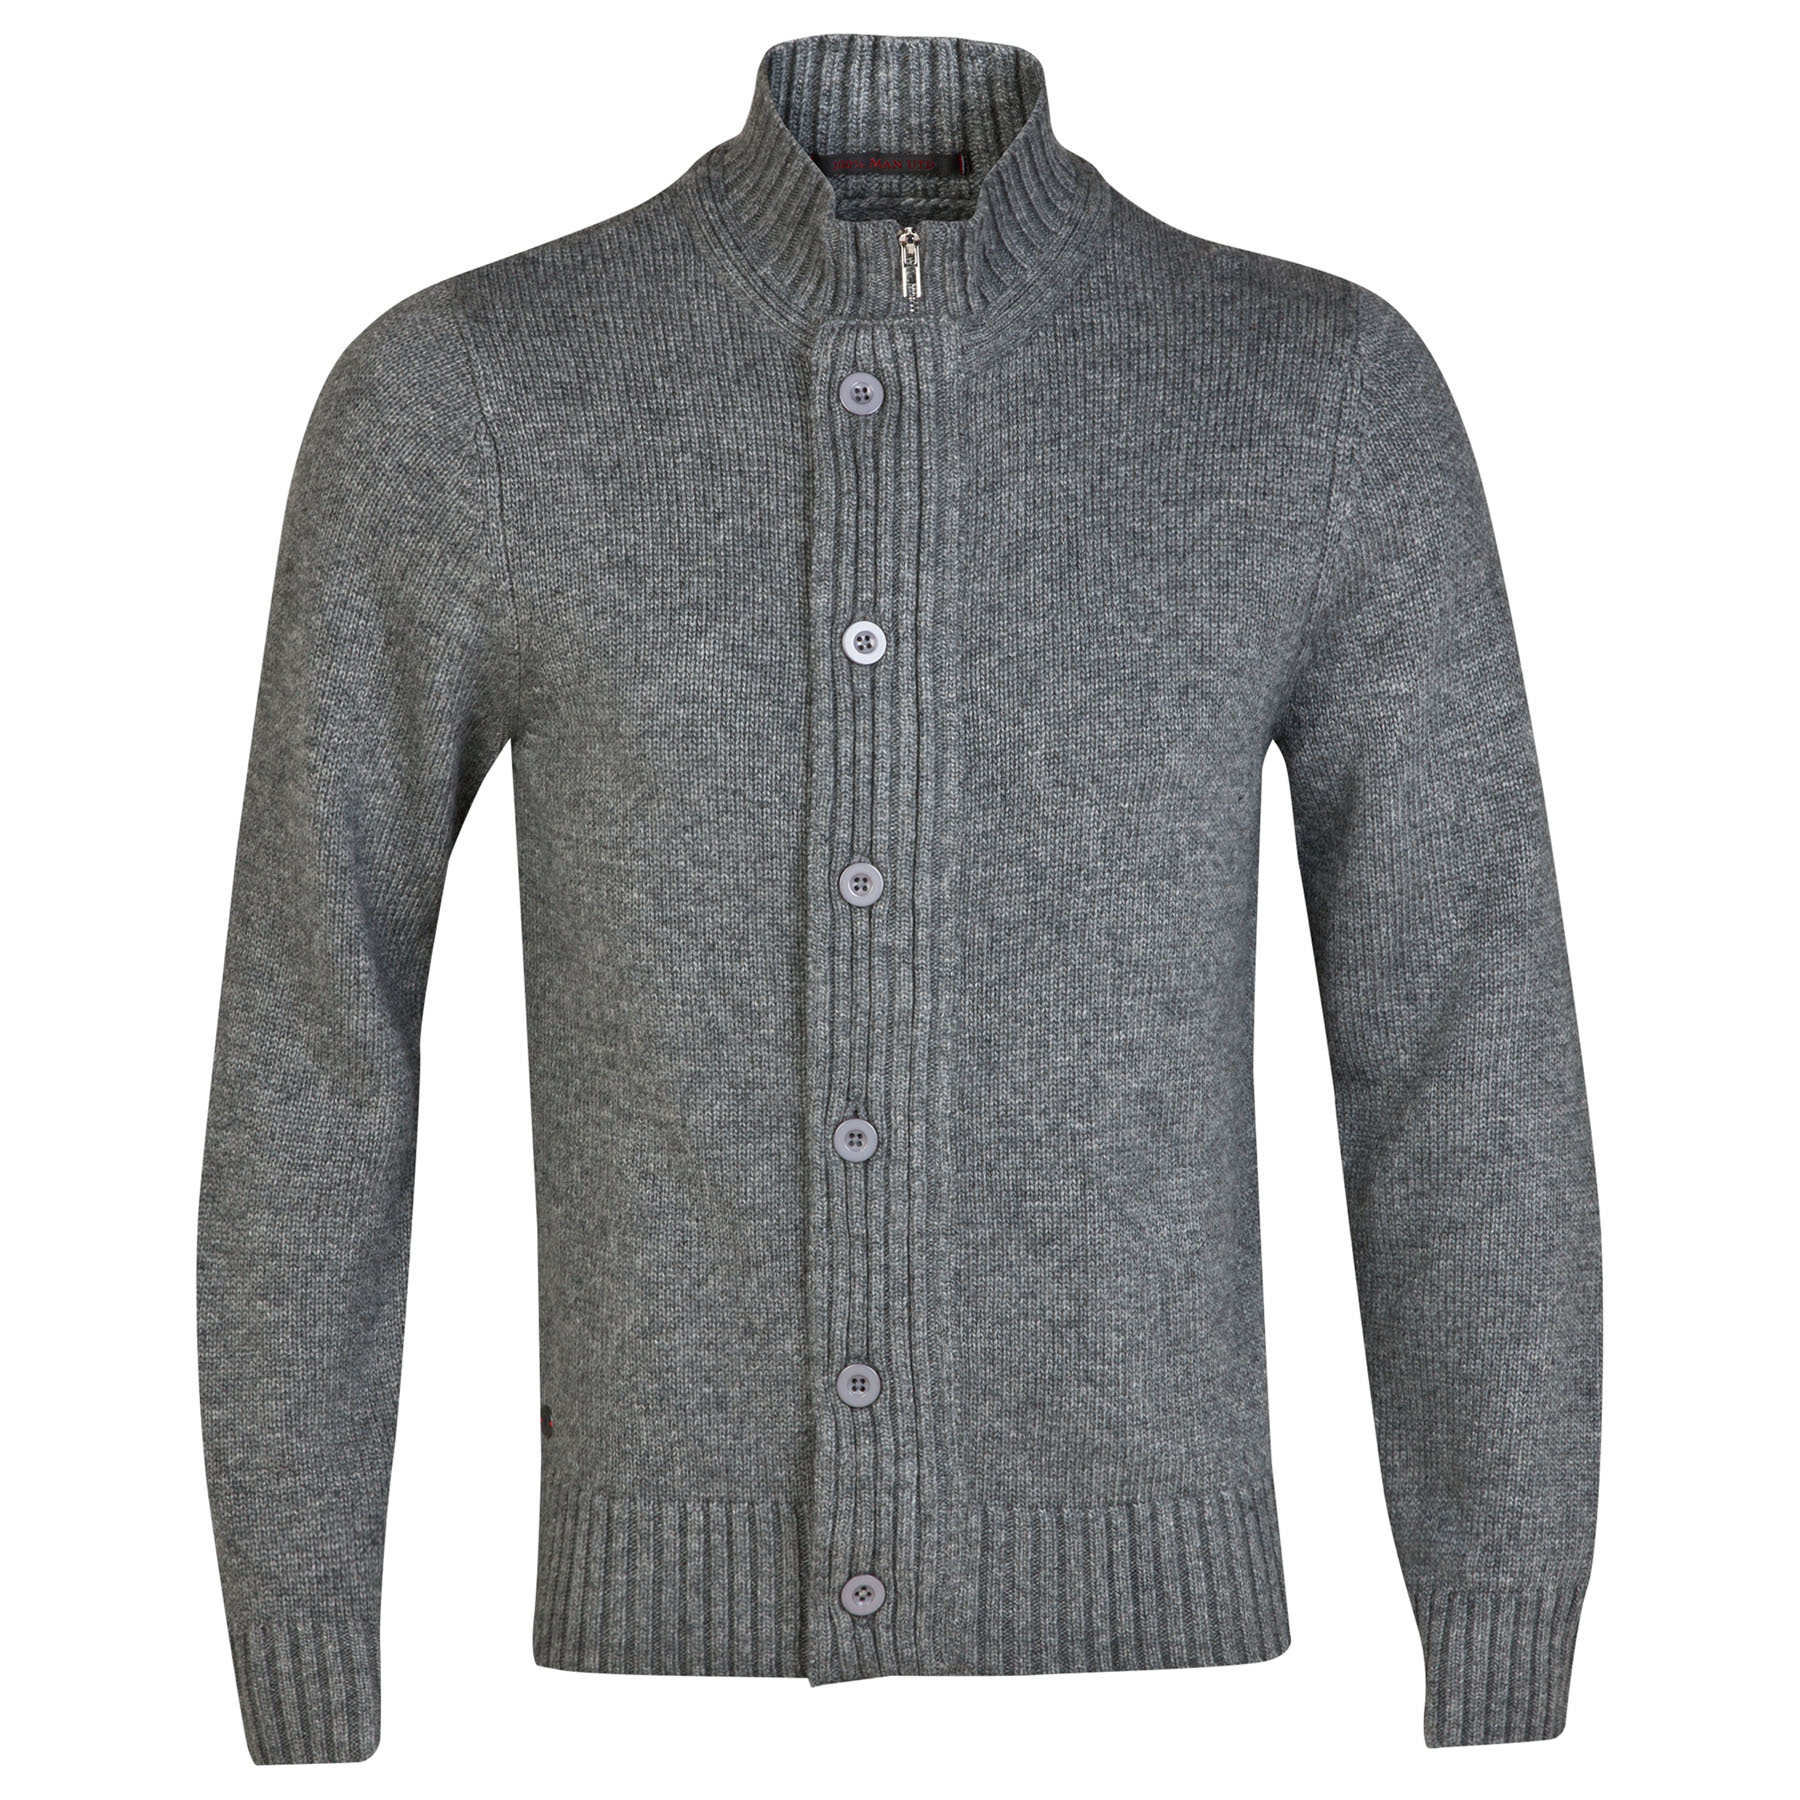 Manchester United Red LabelChunky Knitted Cardigan - Charcoal - Mens